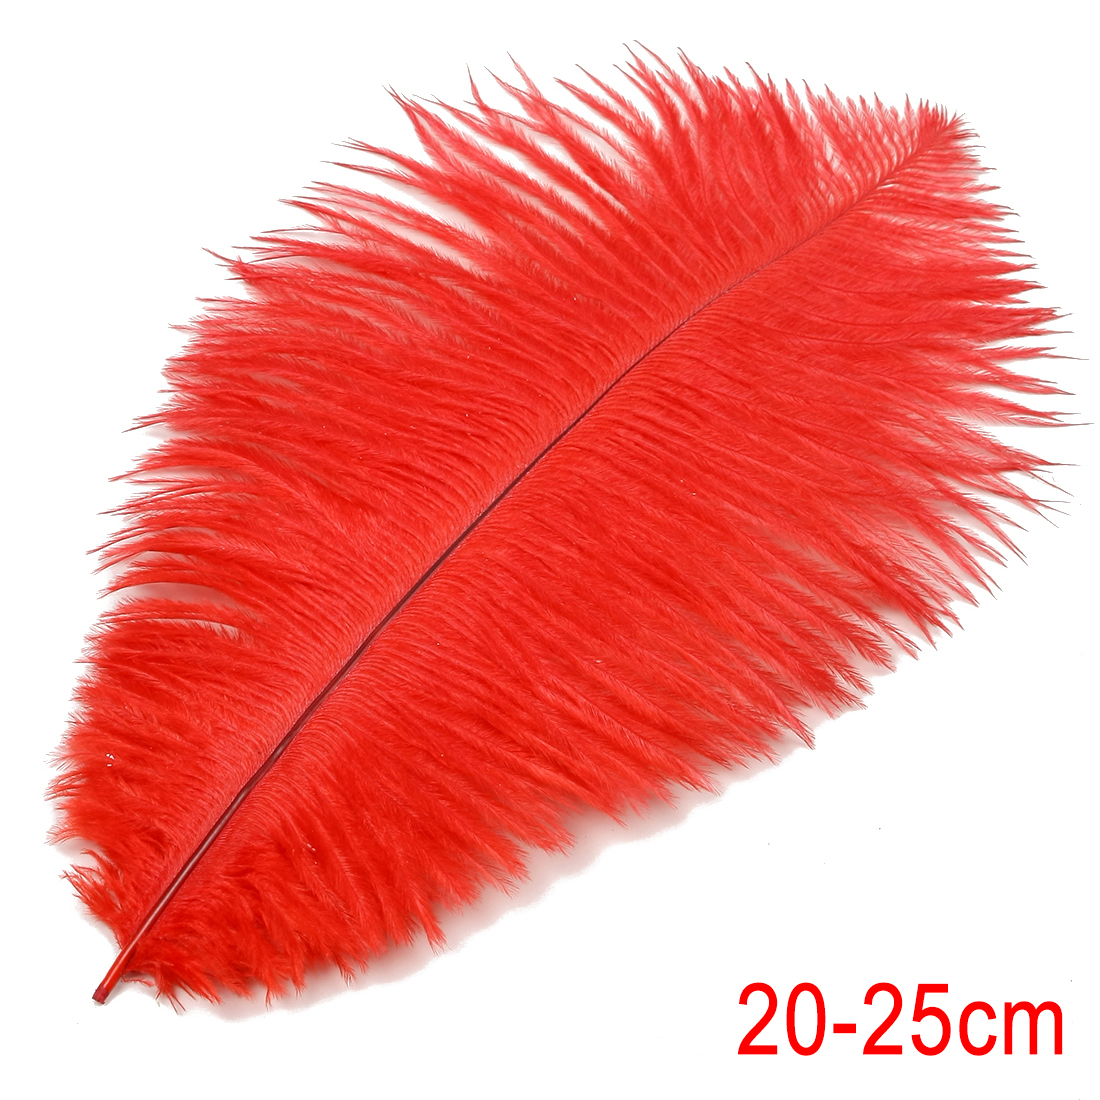 8-10 inch / 20-25cm Ostrich Feather for Wedding Party Decoration Red